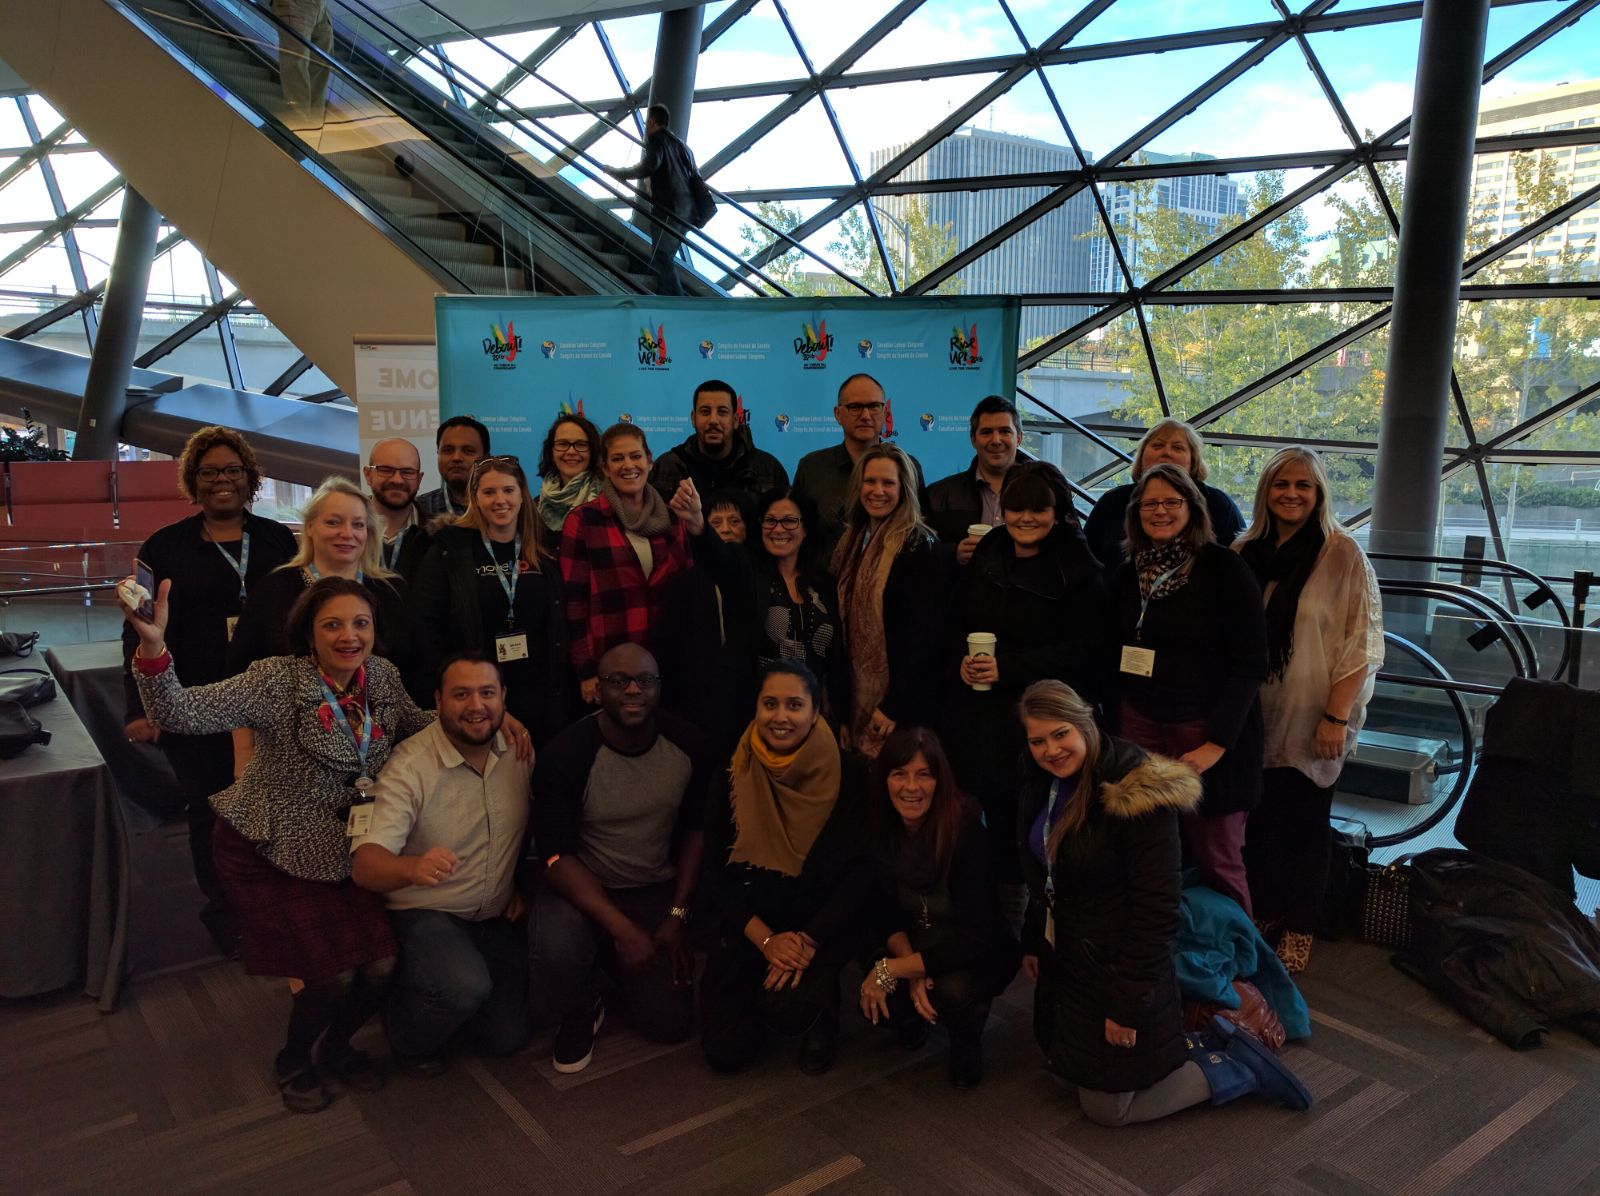 COPE Delegates at the CLC 2016 Rise Up! Human Rights Conference